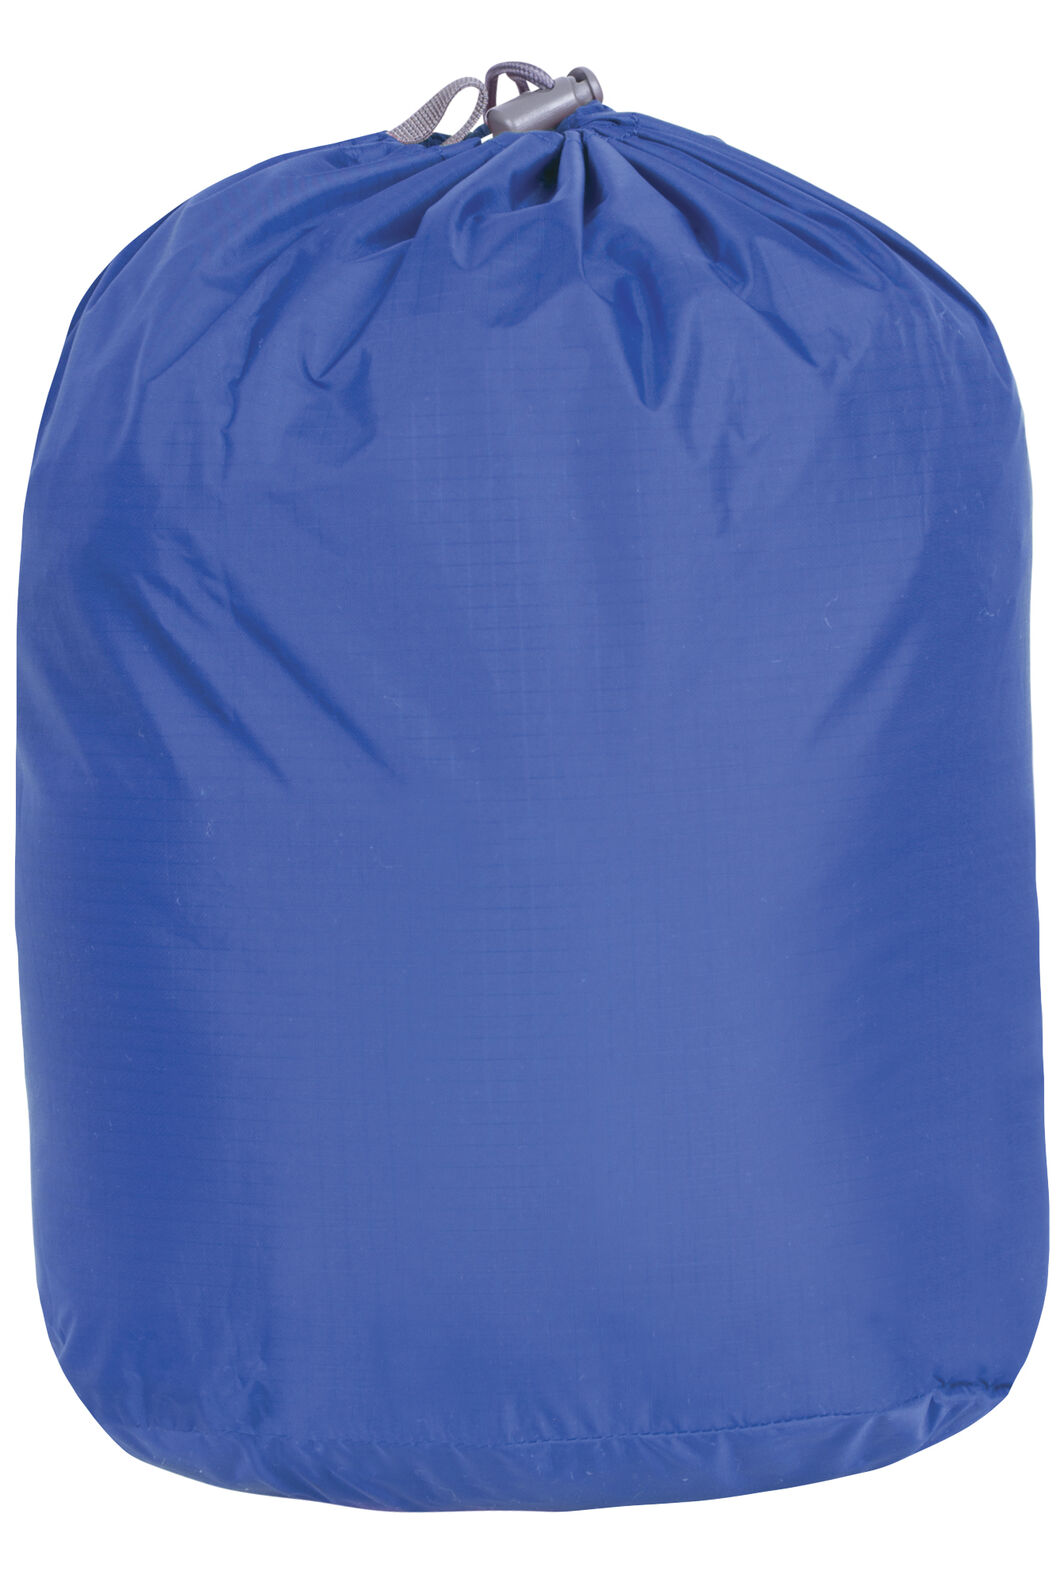 Macpac Large Stuff Sack, Sodalite Blue, hi-res